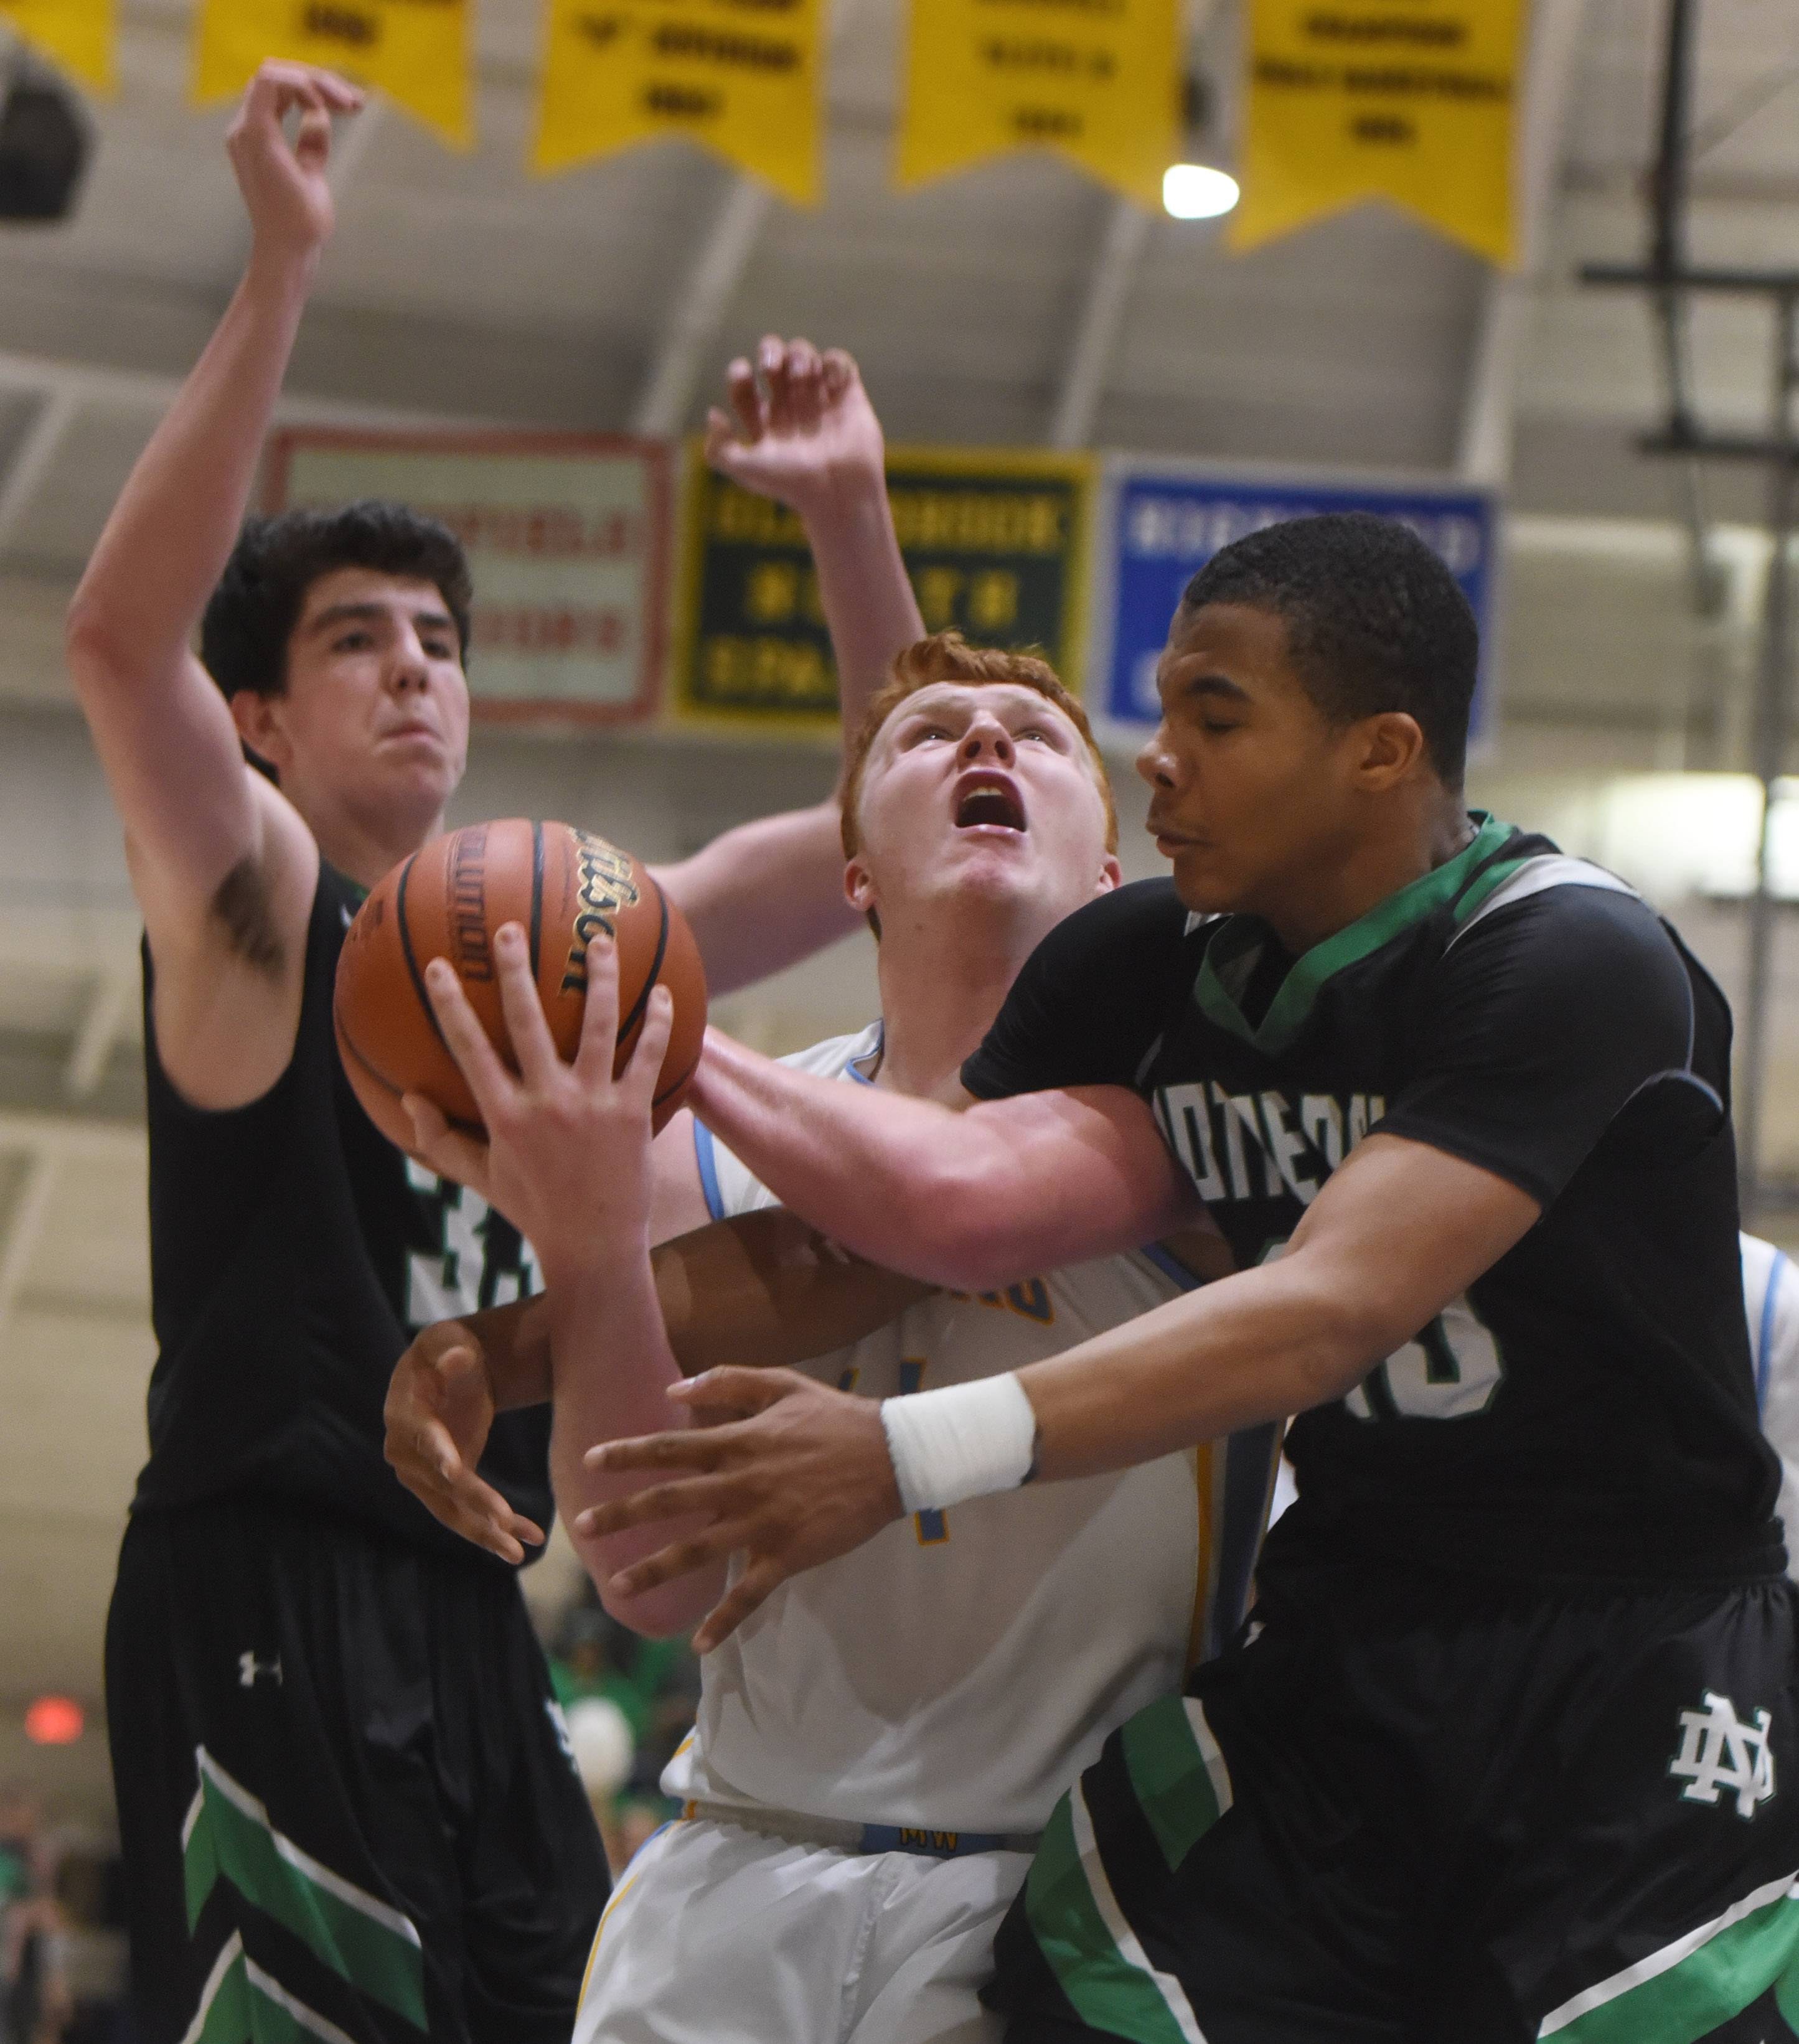 Images: Maine West vs. Notre Dame, Class 4A regional semifinal boys basketball